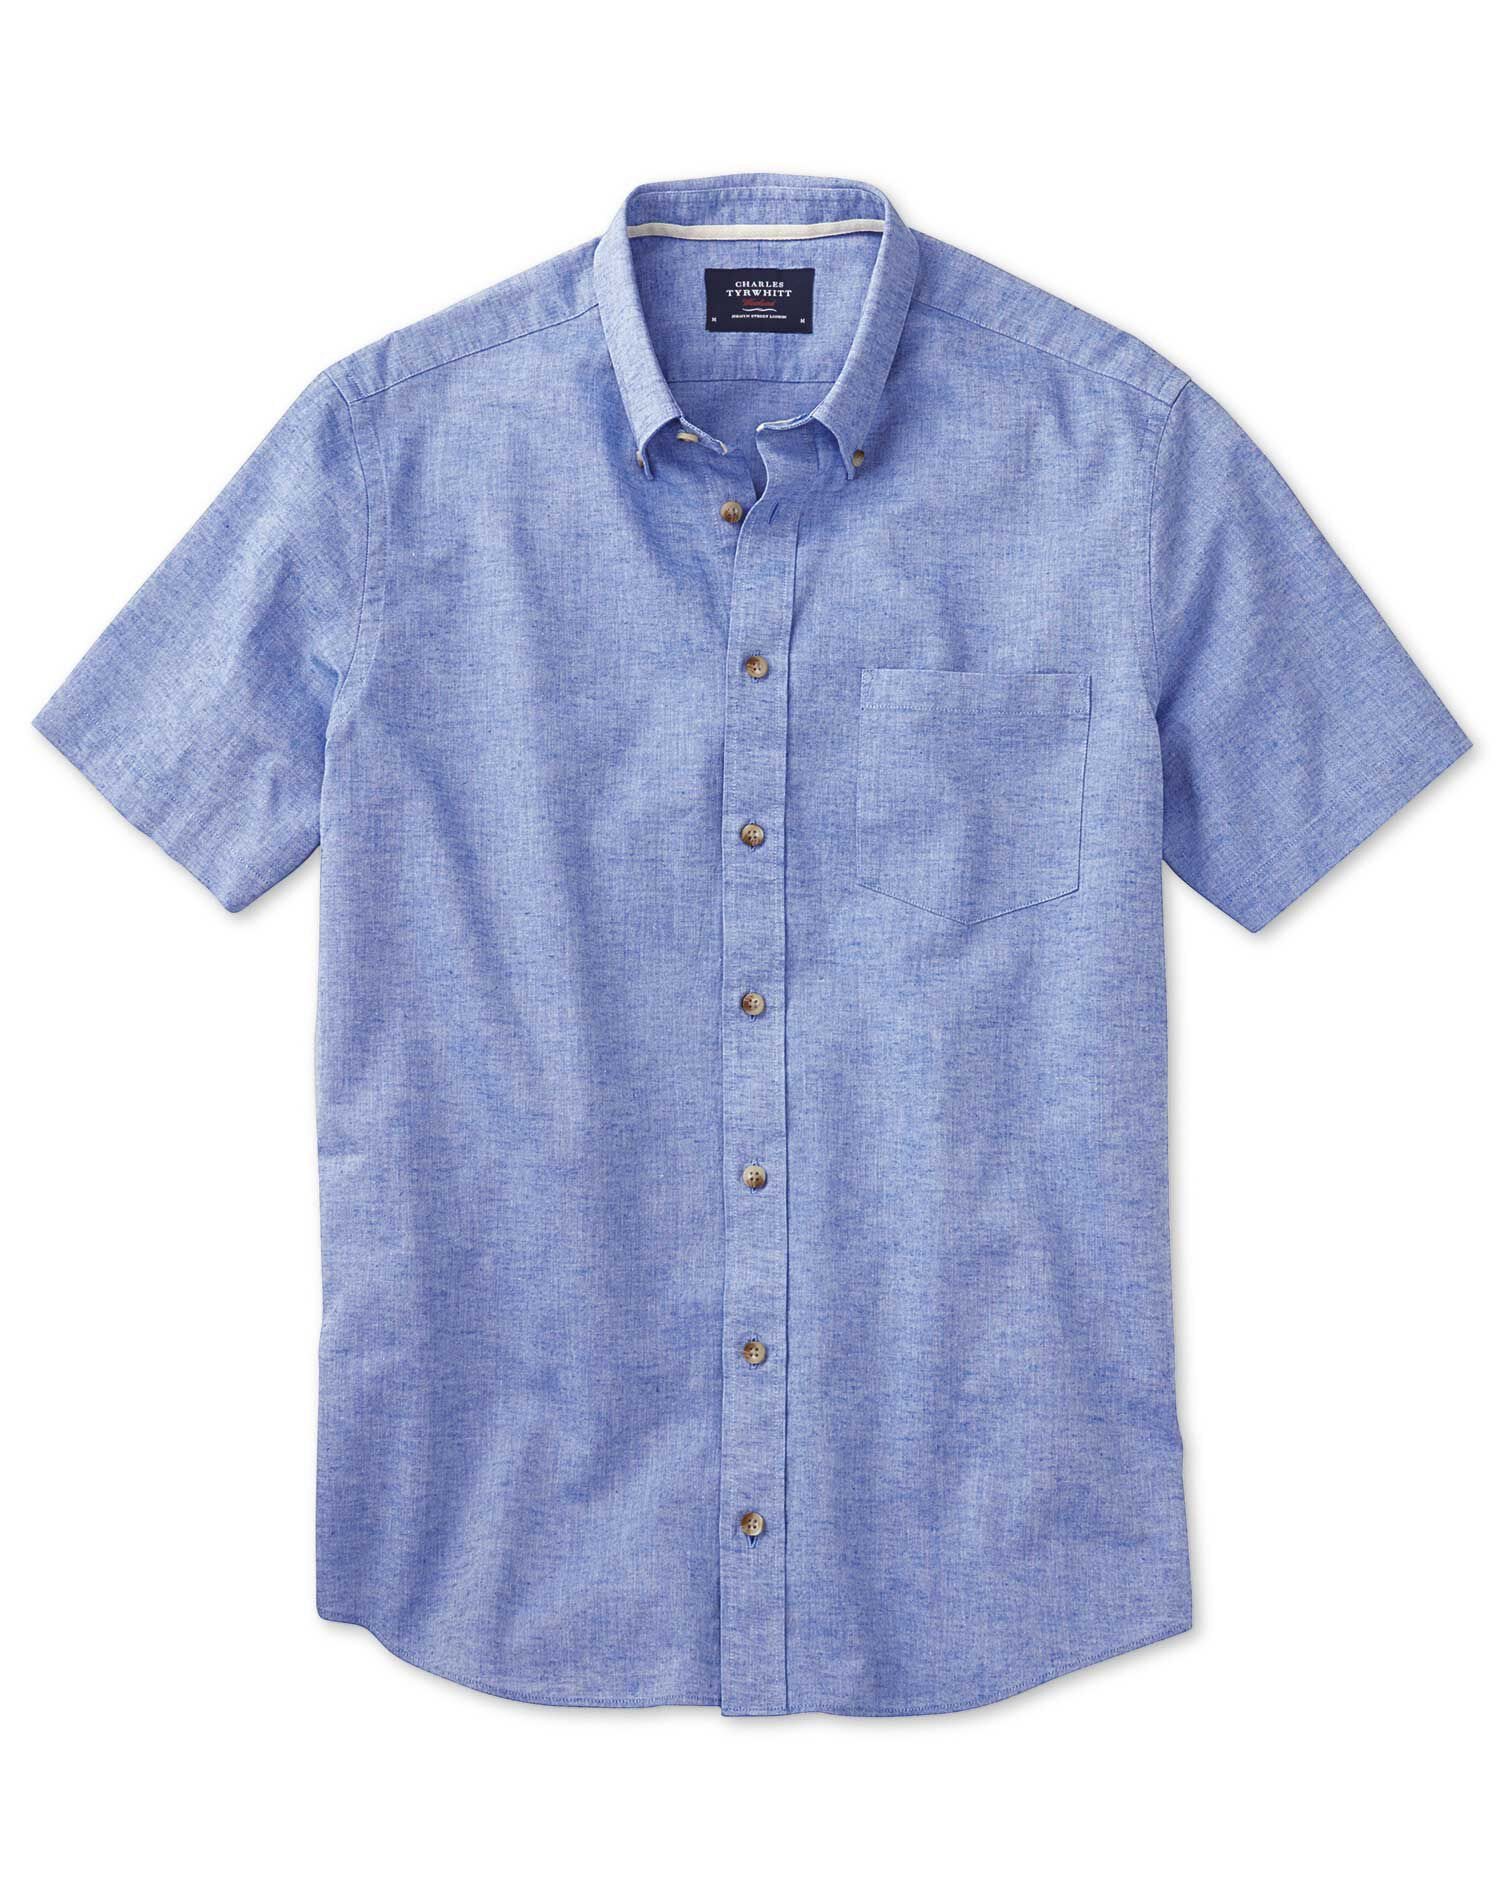 Charles Tyrwhitt Slim Fit Short Sleeve Mid Blue Cotton Formal Shirt Size XS